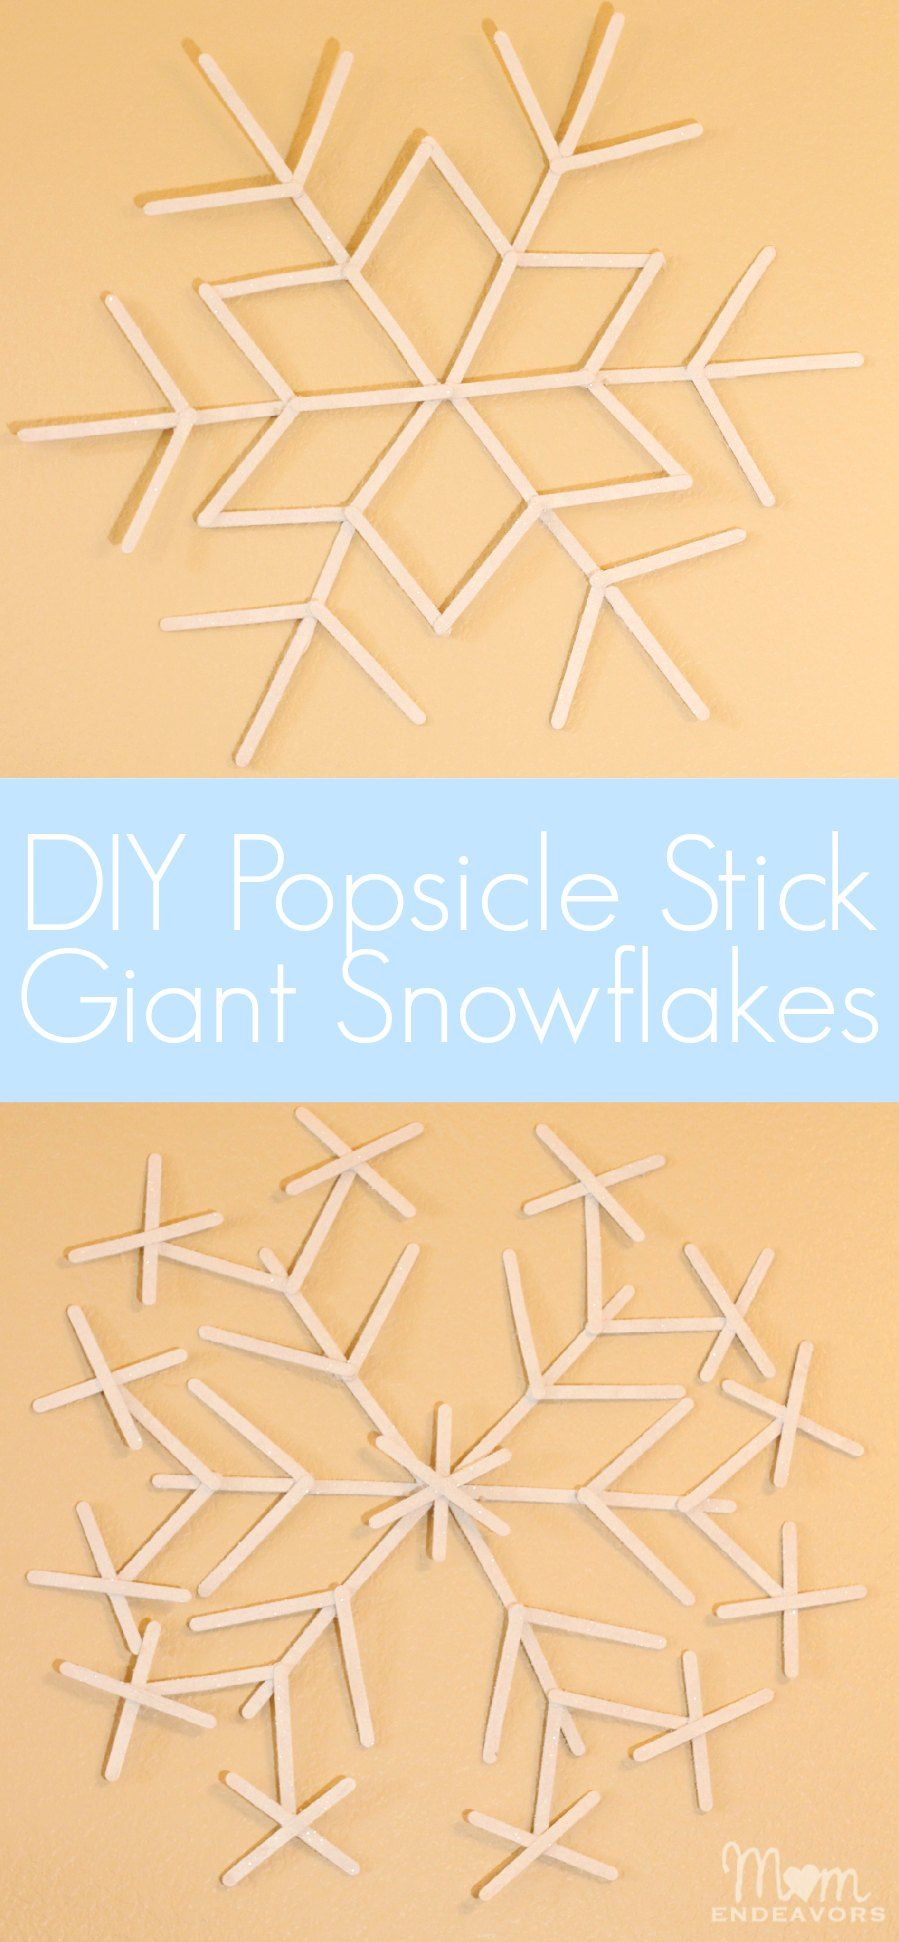 A fun & easy Christmas/Winter craft project! Make giant popsicle stick snowflakes! #ValueSeekersClub